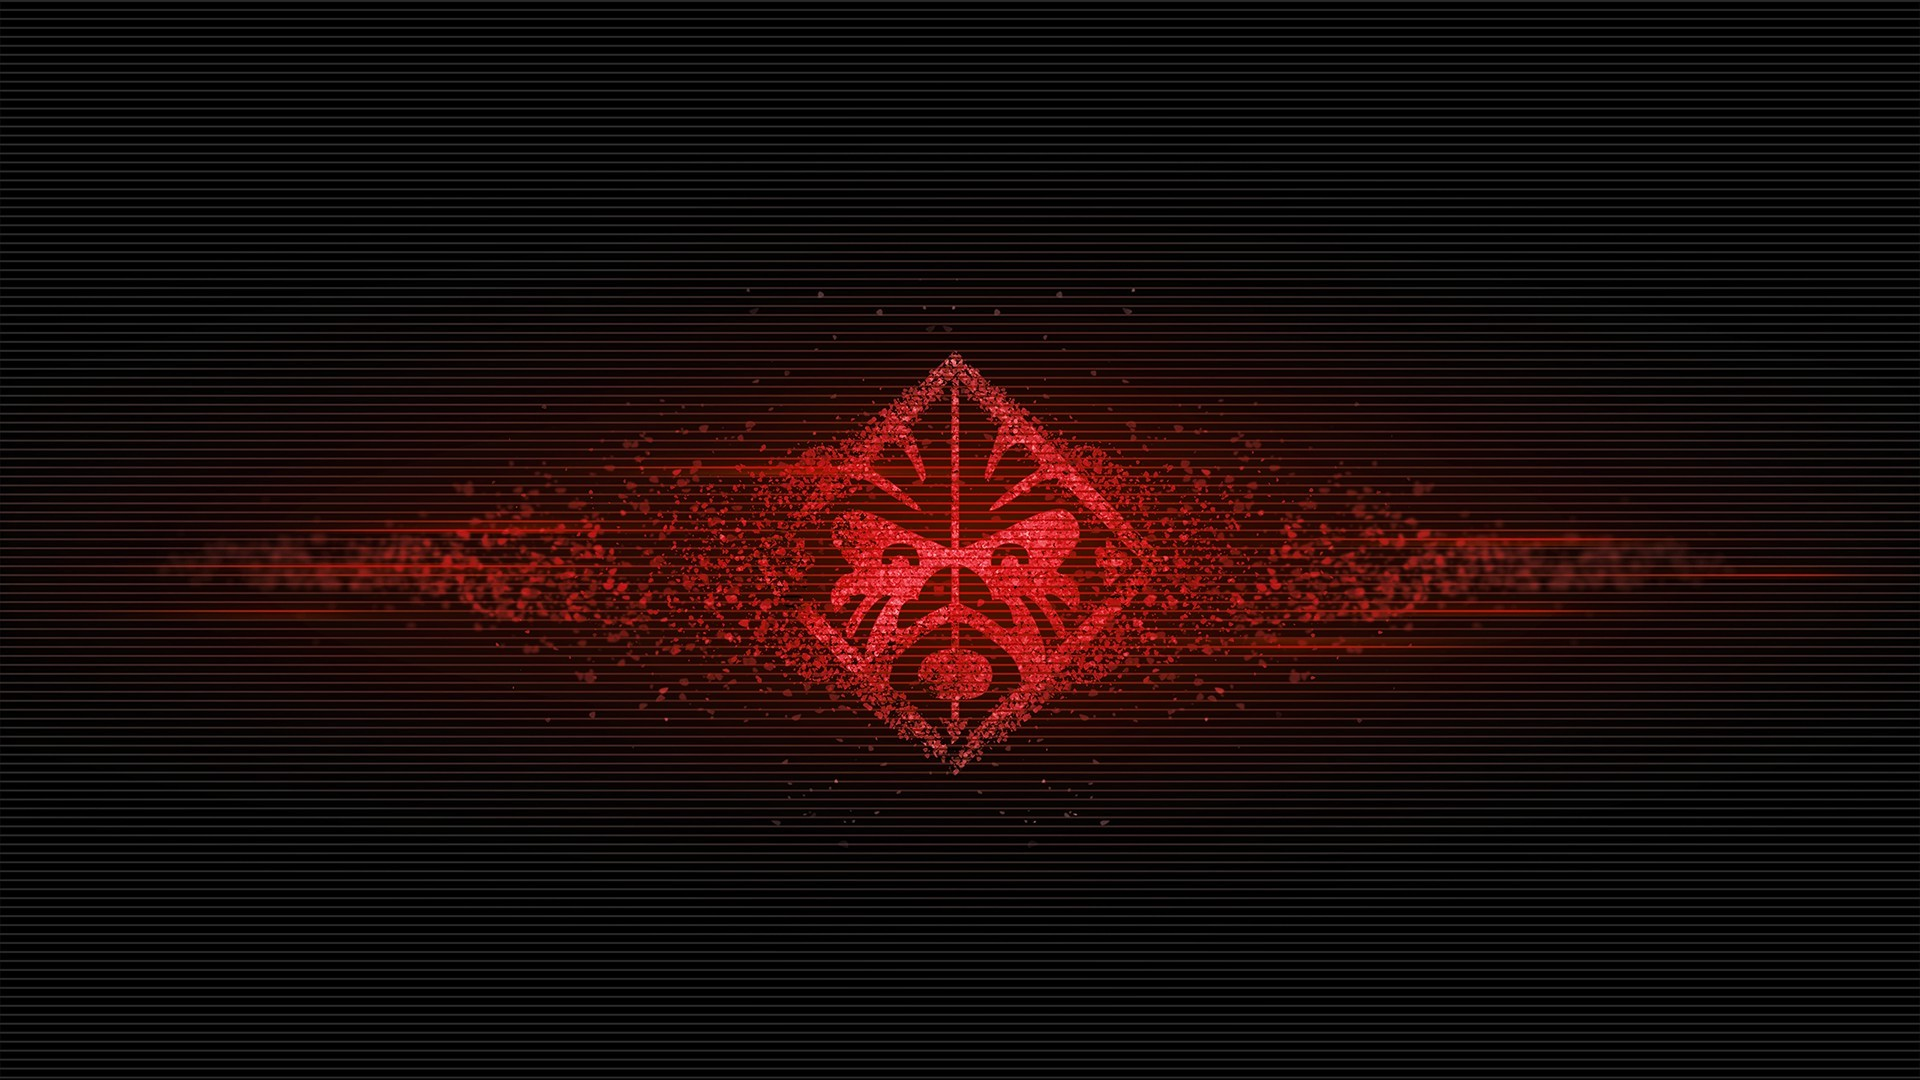 Black And Red Wallpaper 1920x1080 (75+ Images